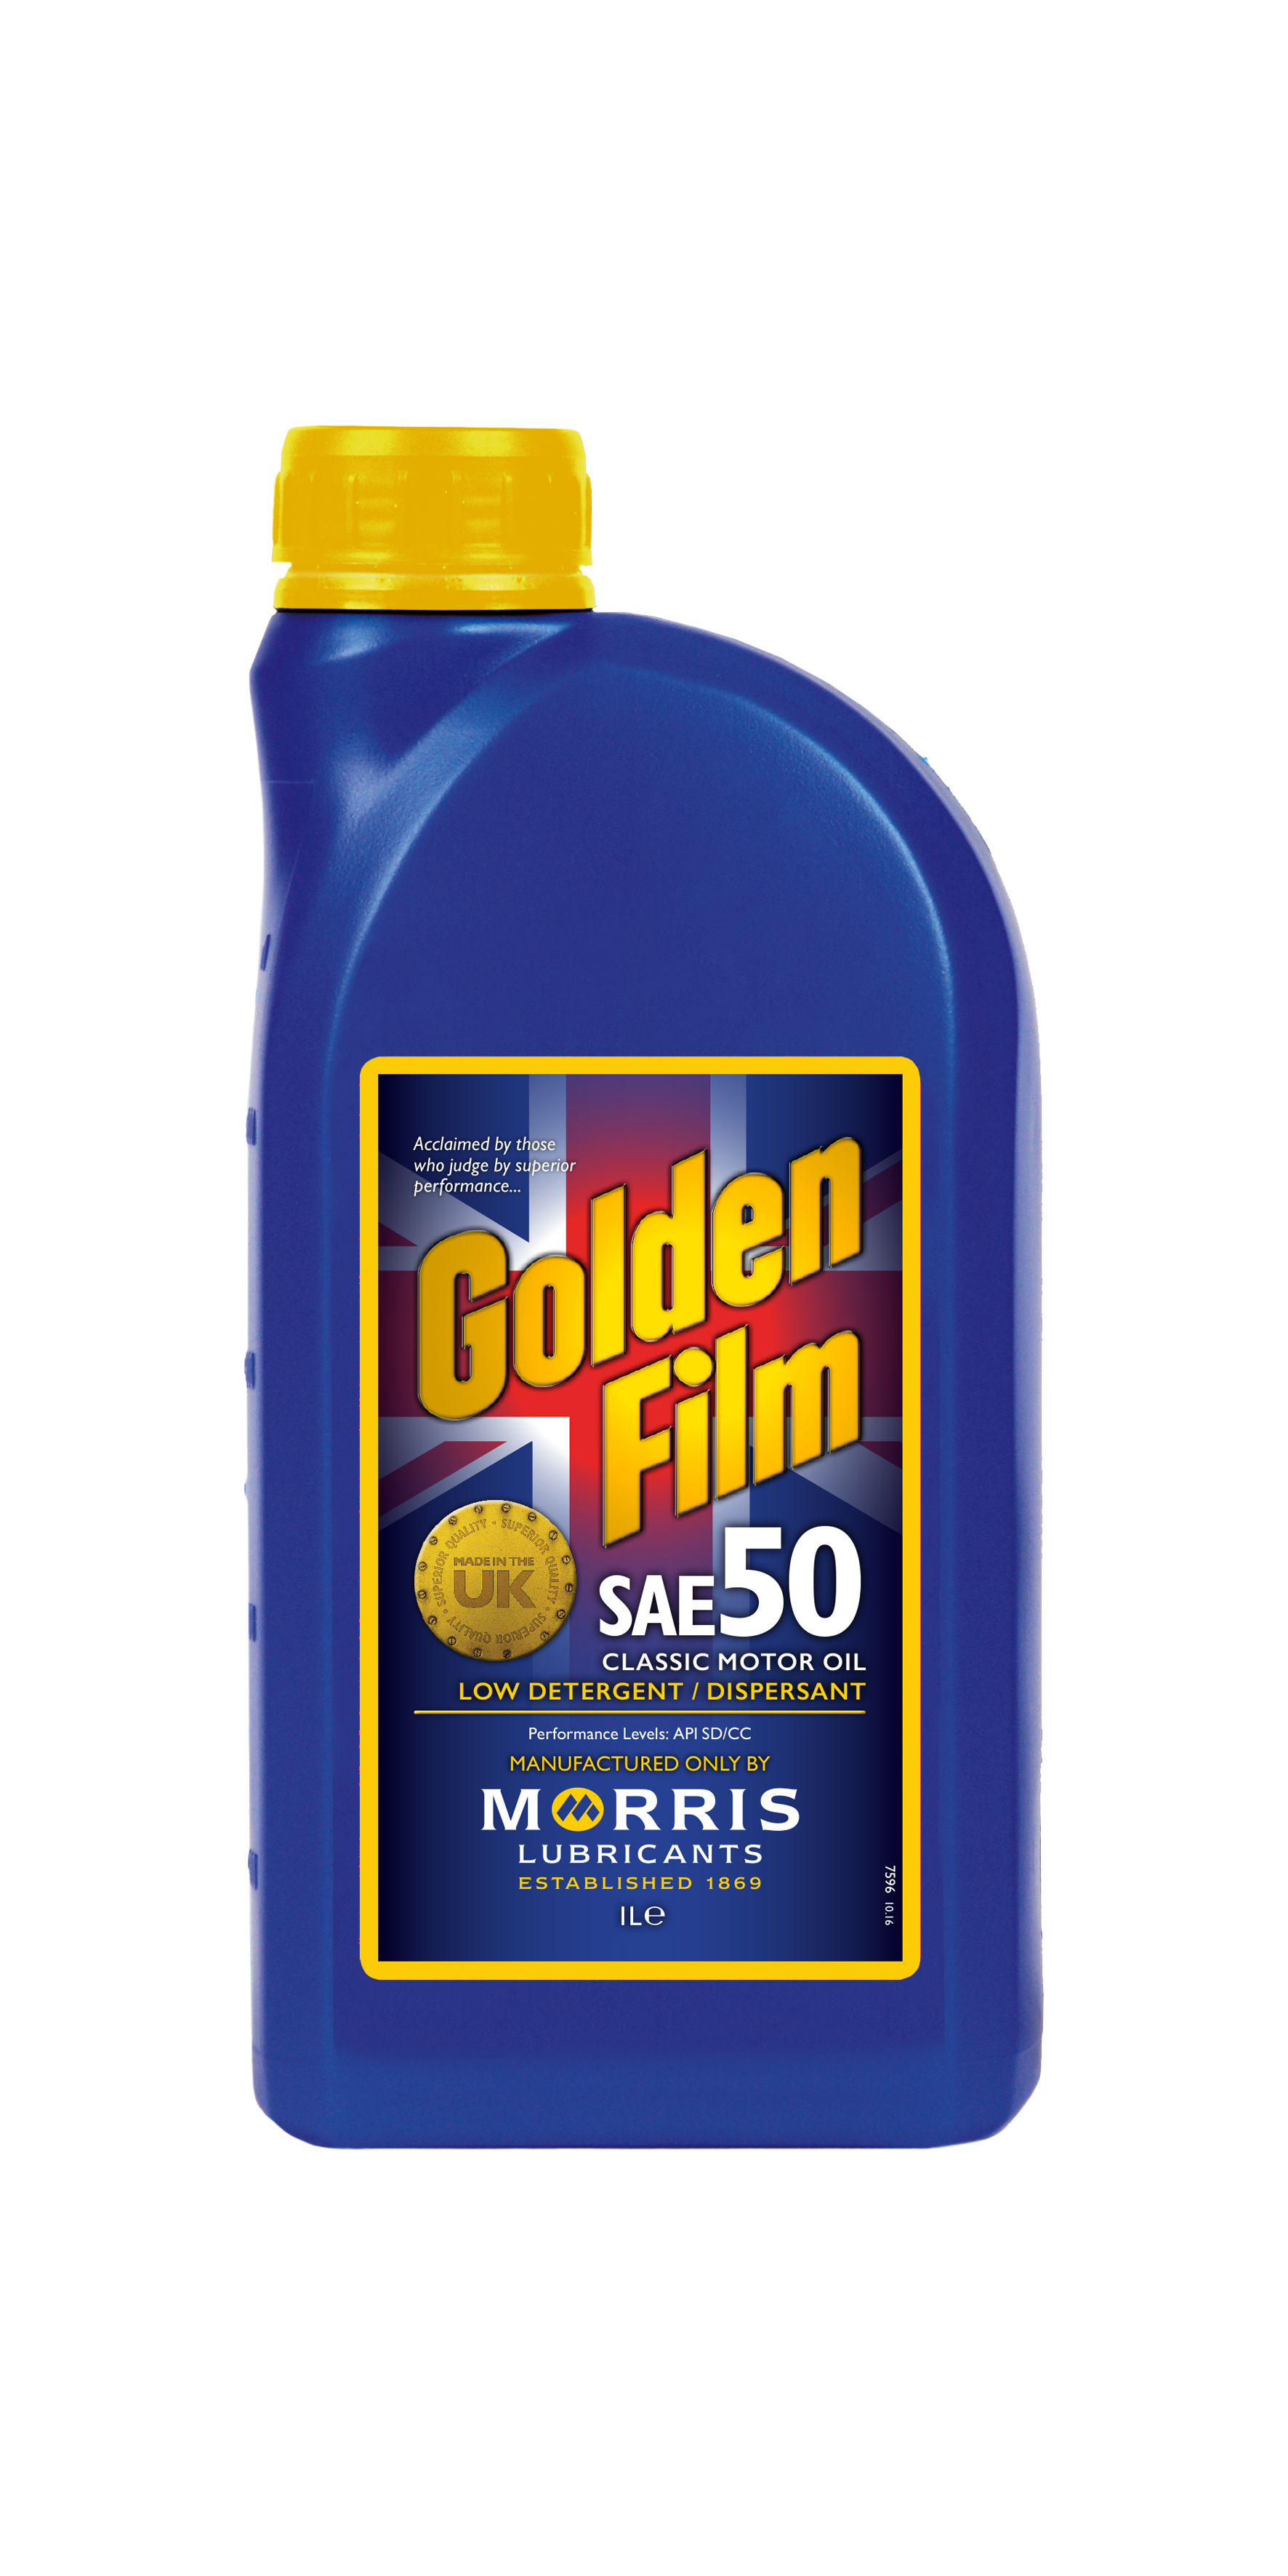 golden film sae 50 classic motor oil. Black Bedroom Furniture Sets. Home Design Ideas